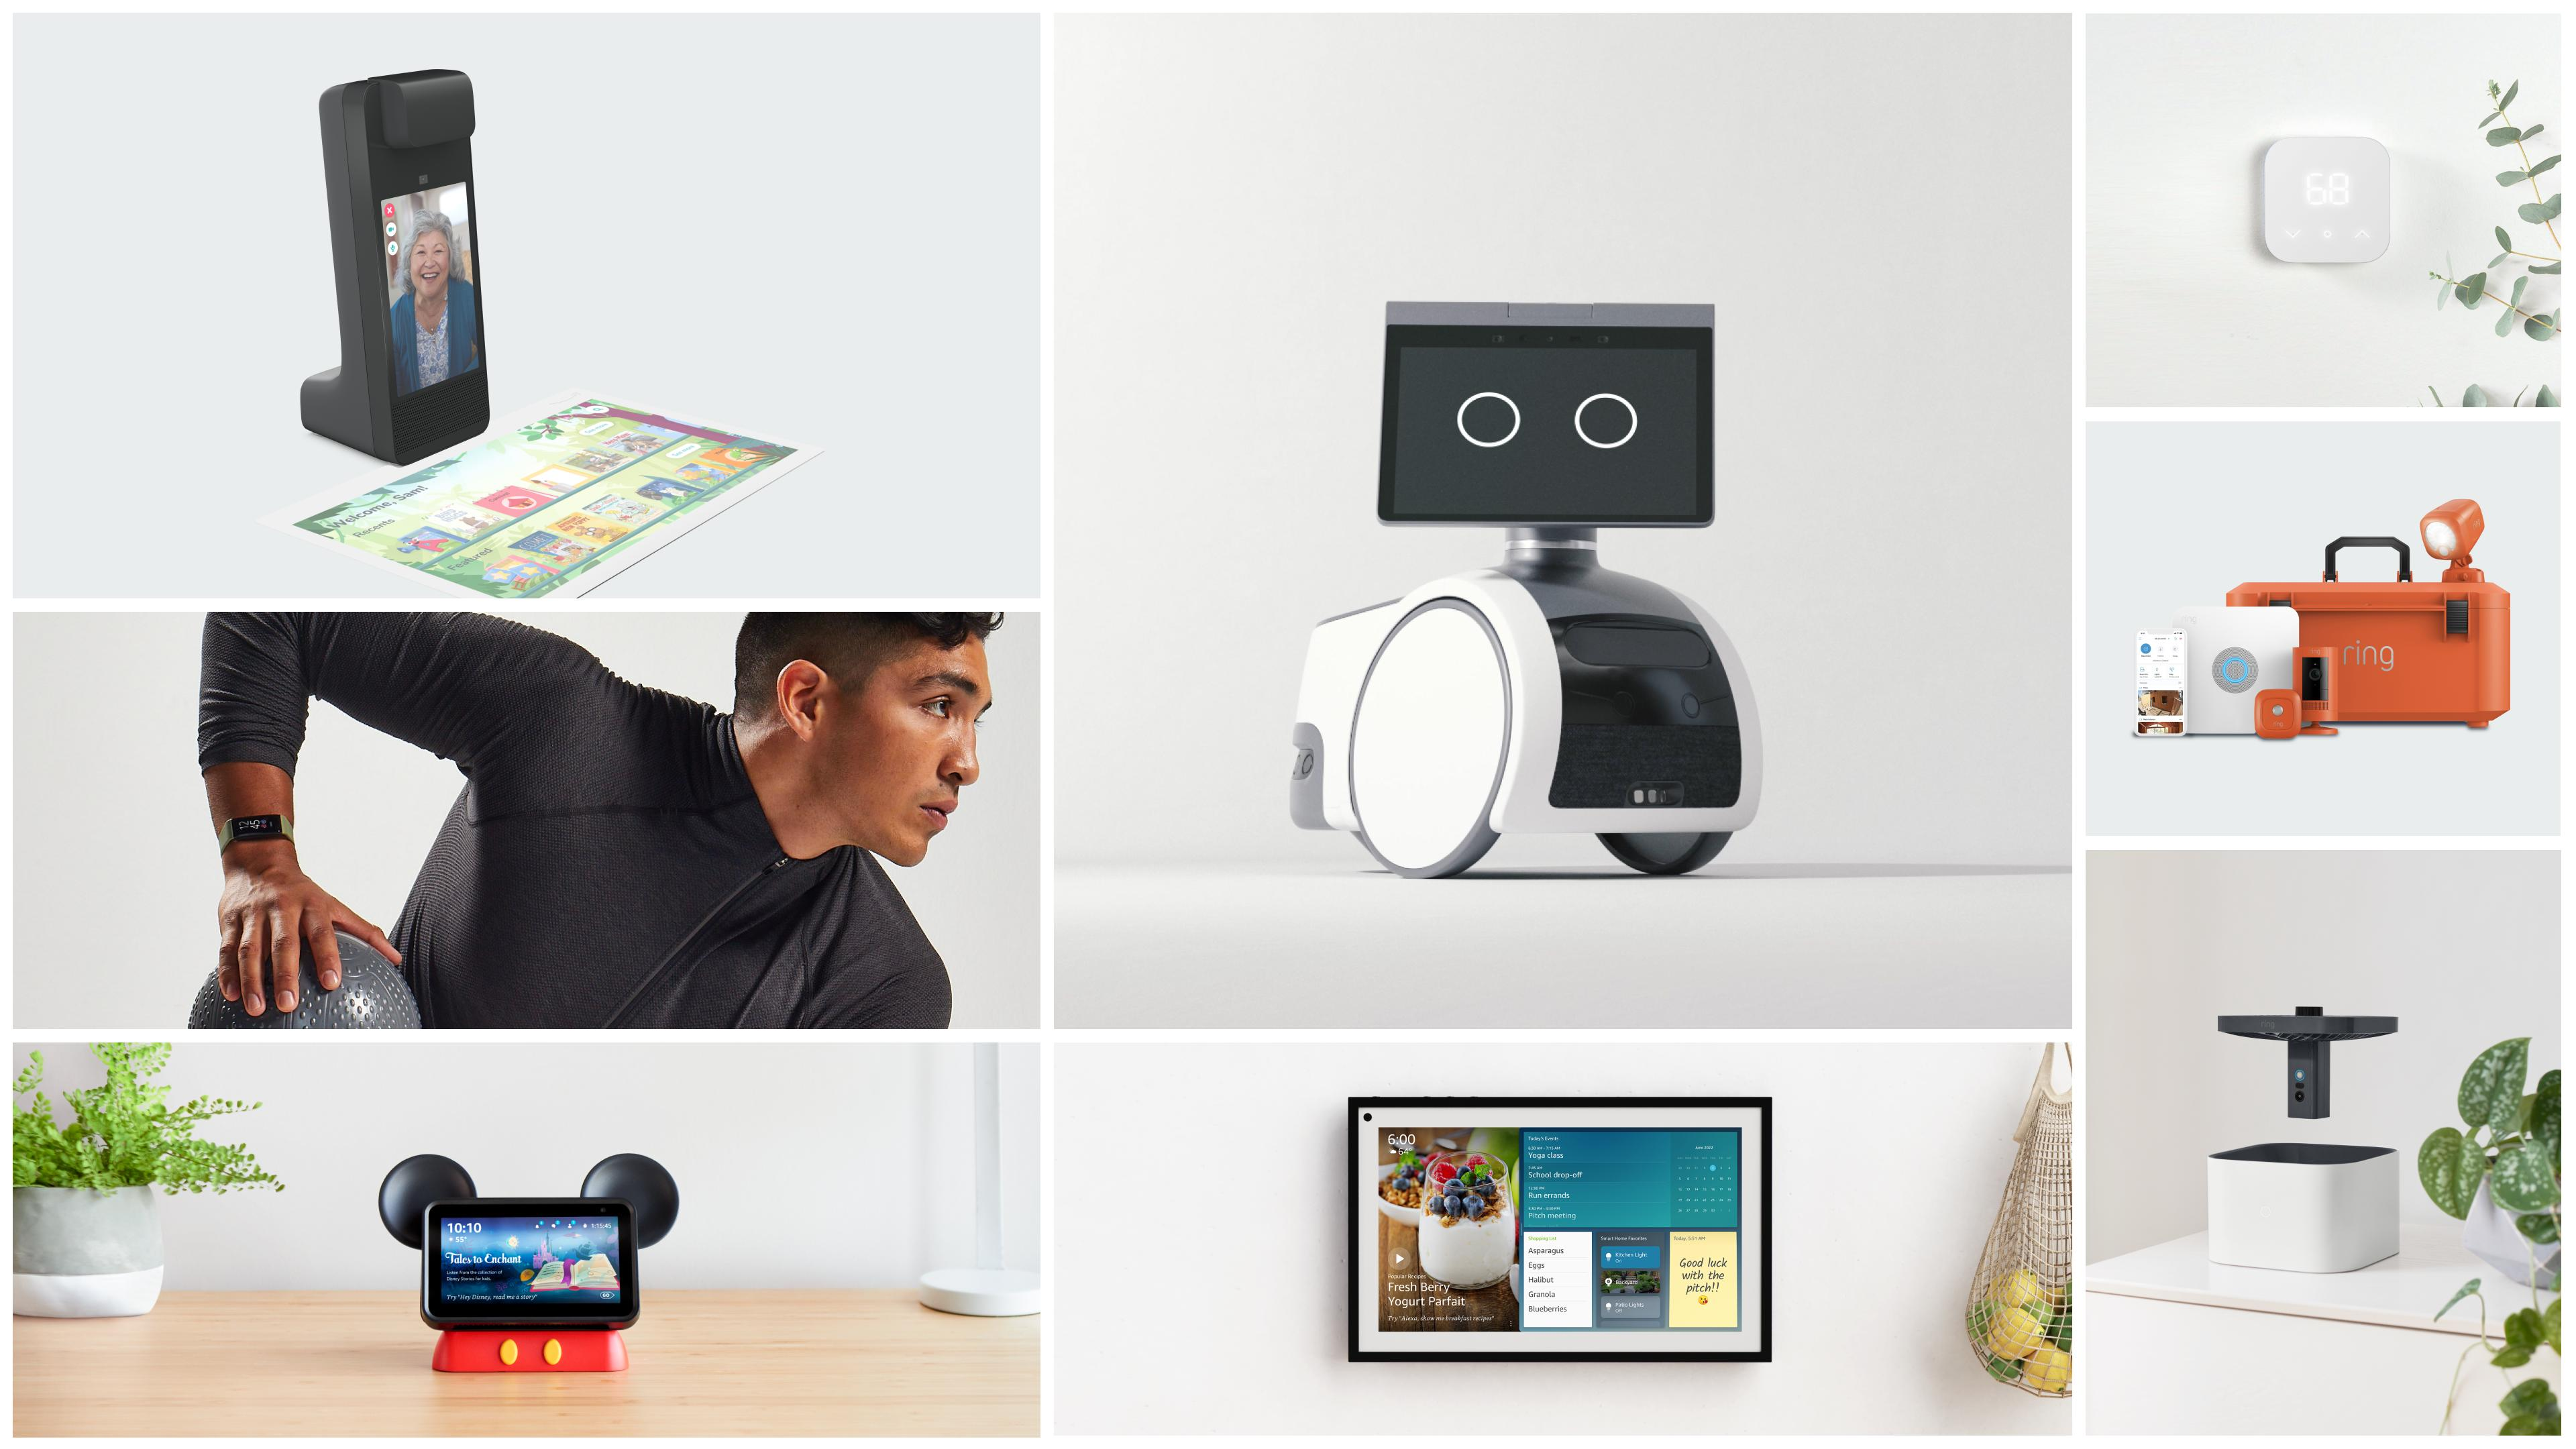 Amazon Devices and Services Fall 2021: A grid of thumbnails showing (clockwise from top left): the Amazon Glow, Astro robot, Smart Thermostat, Blink cameras, Ring security drone, Echo Show 15, Echo Show in a Mickey Mouse holder and Halo View band.